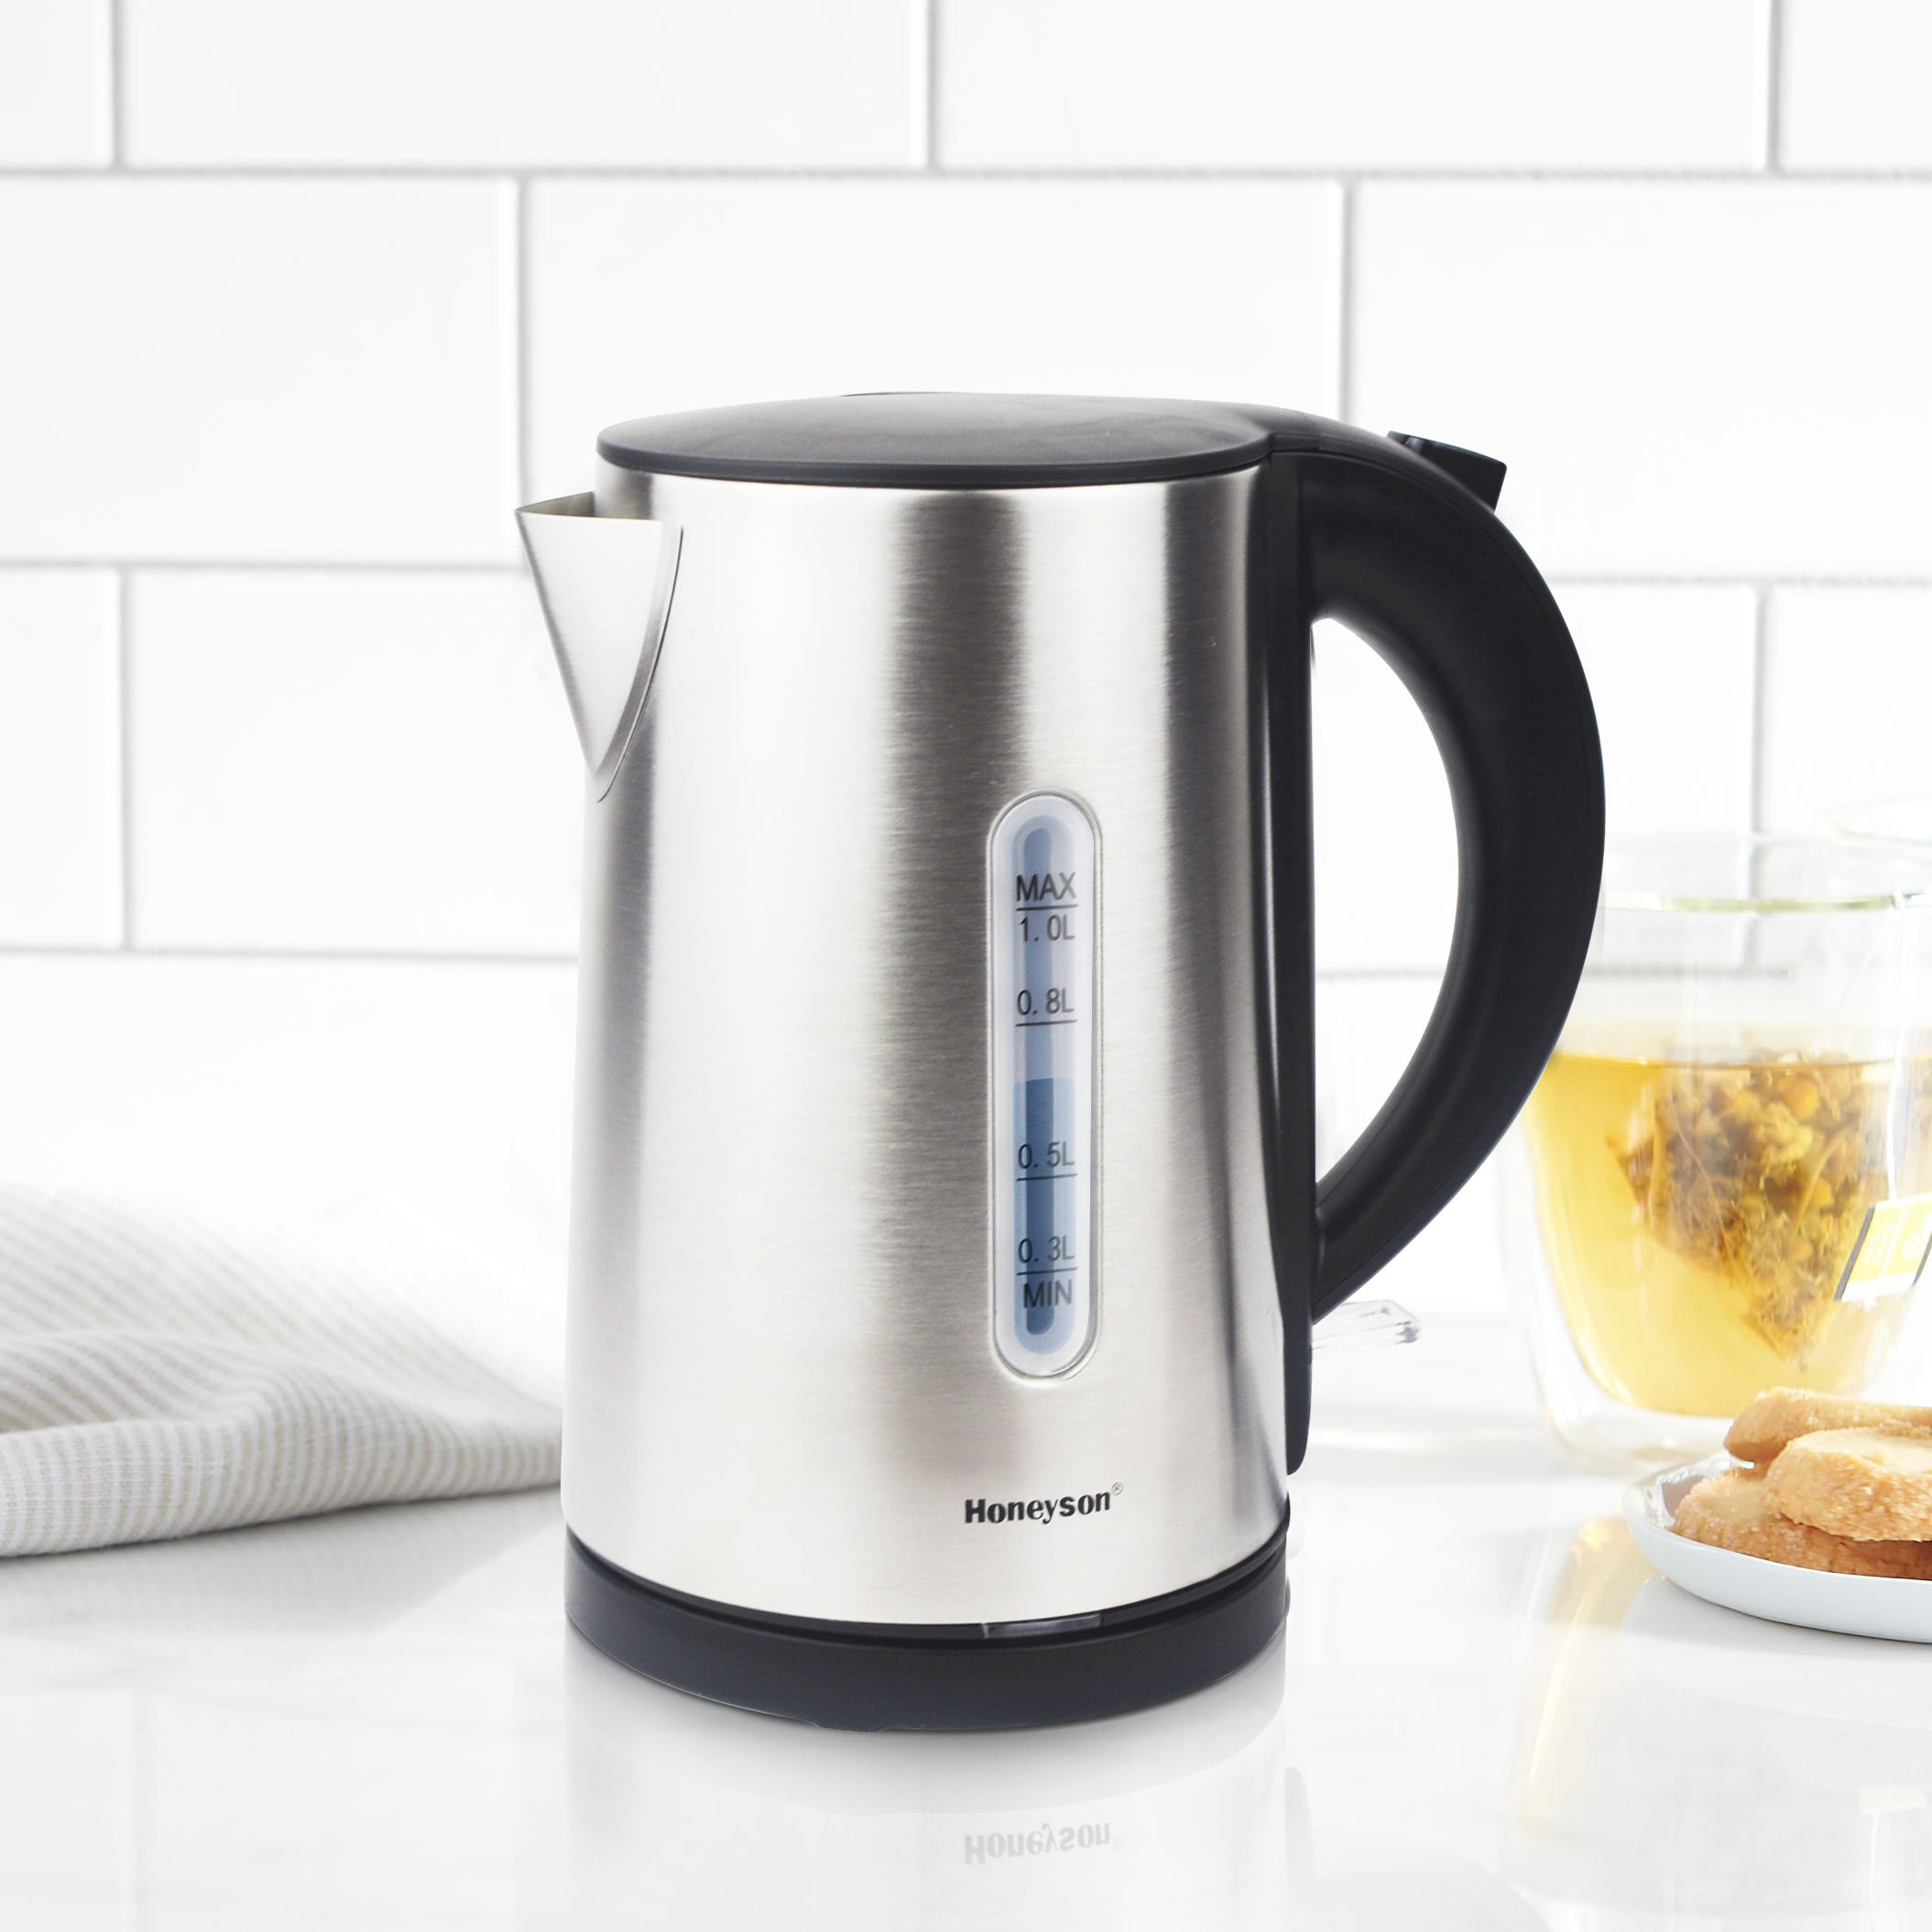 Honeyson 1litre stainless steel electric kettle for coffee